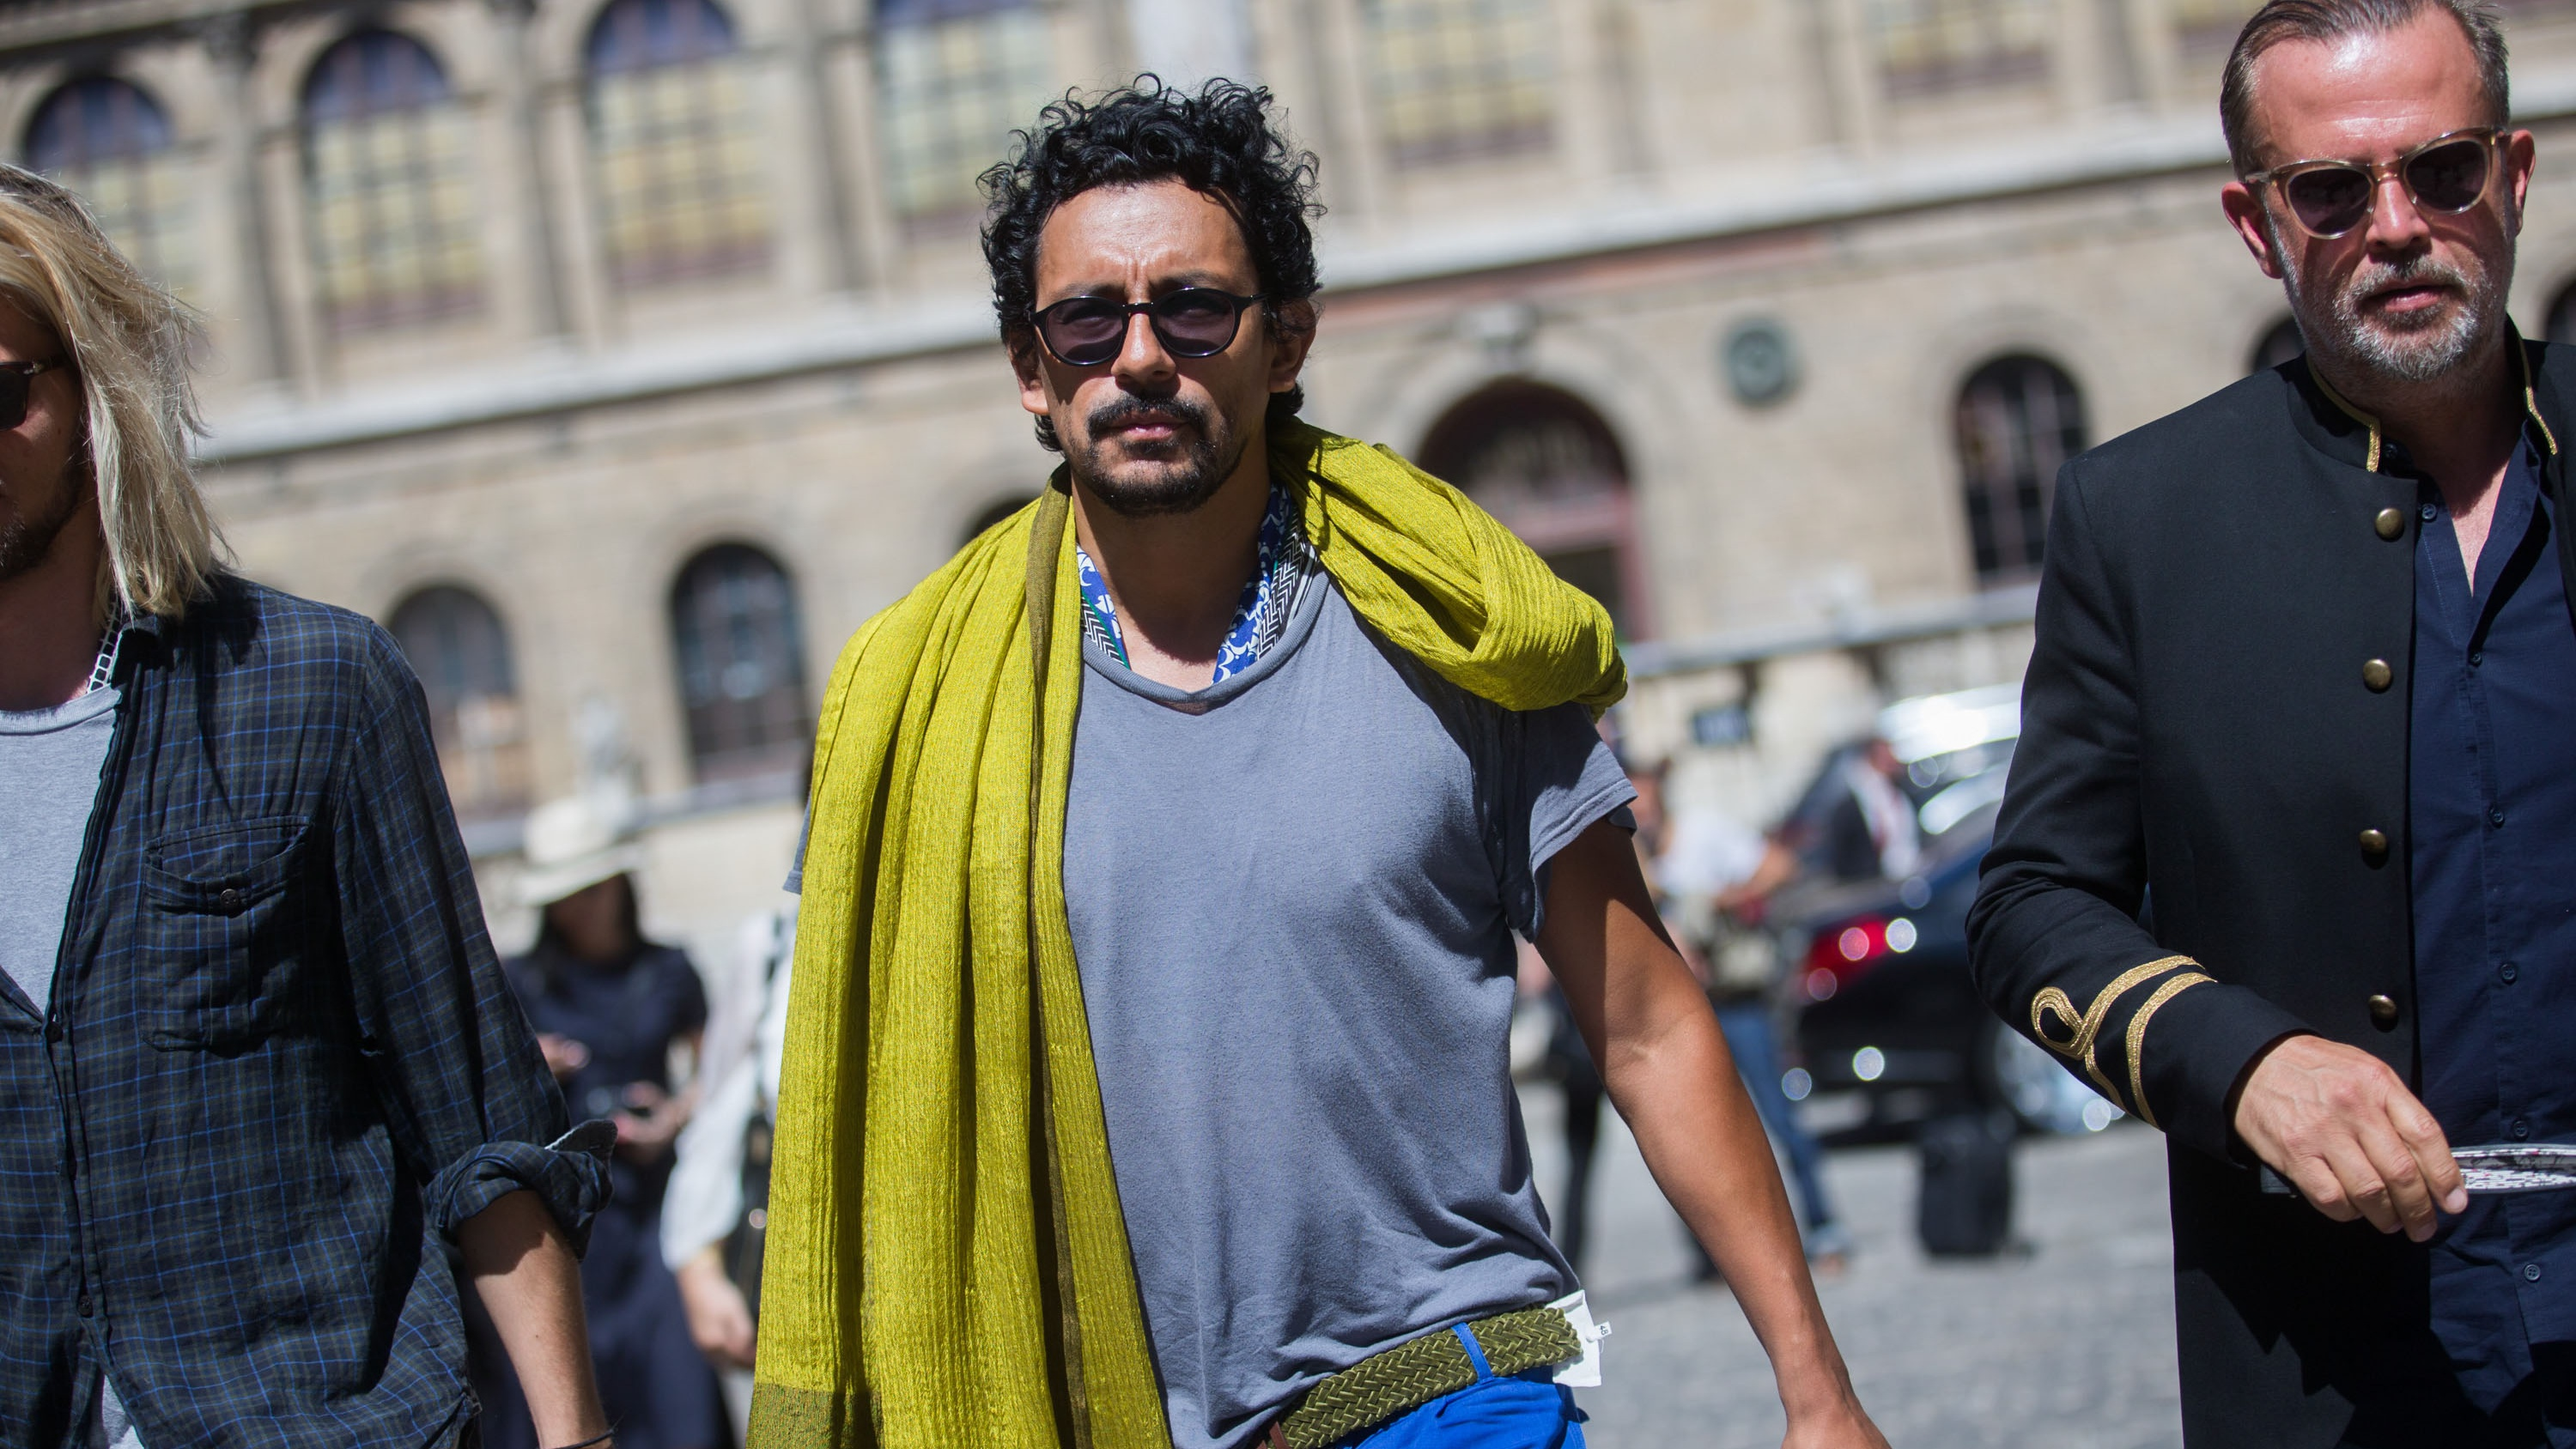 PARIS, FRANCE - JUNE 28: Haider Ackermann exits the Lanvin show on June 28, 2015 in Paris, France.